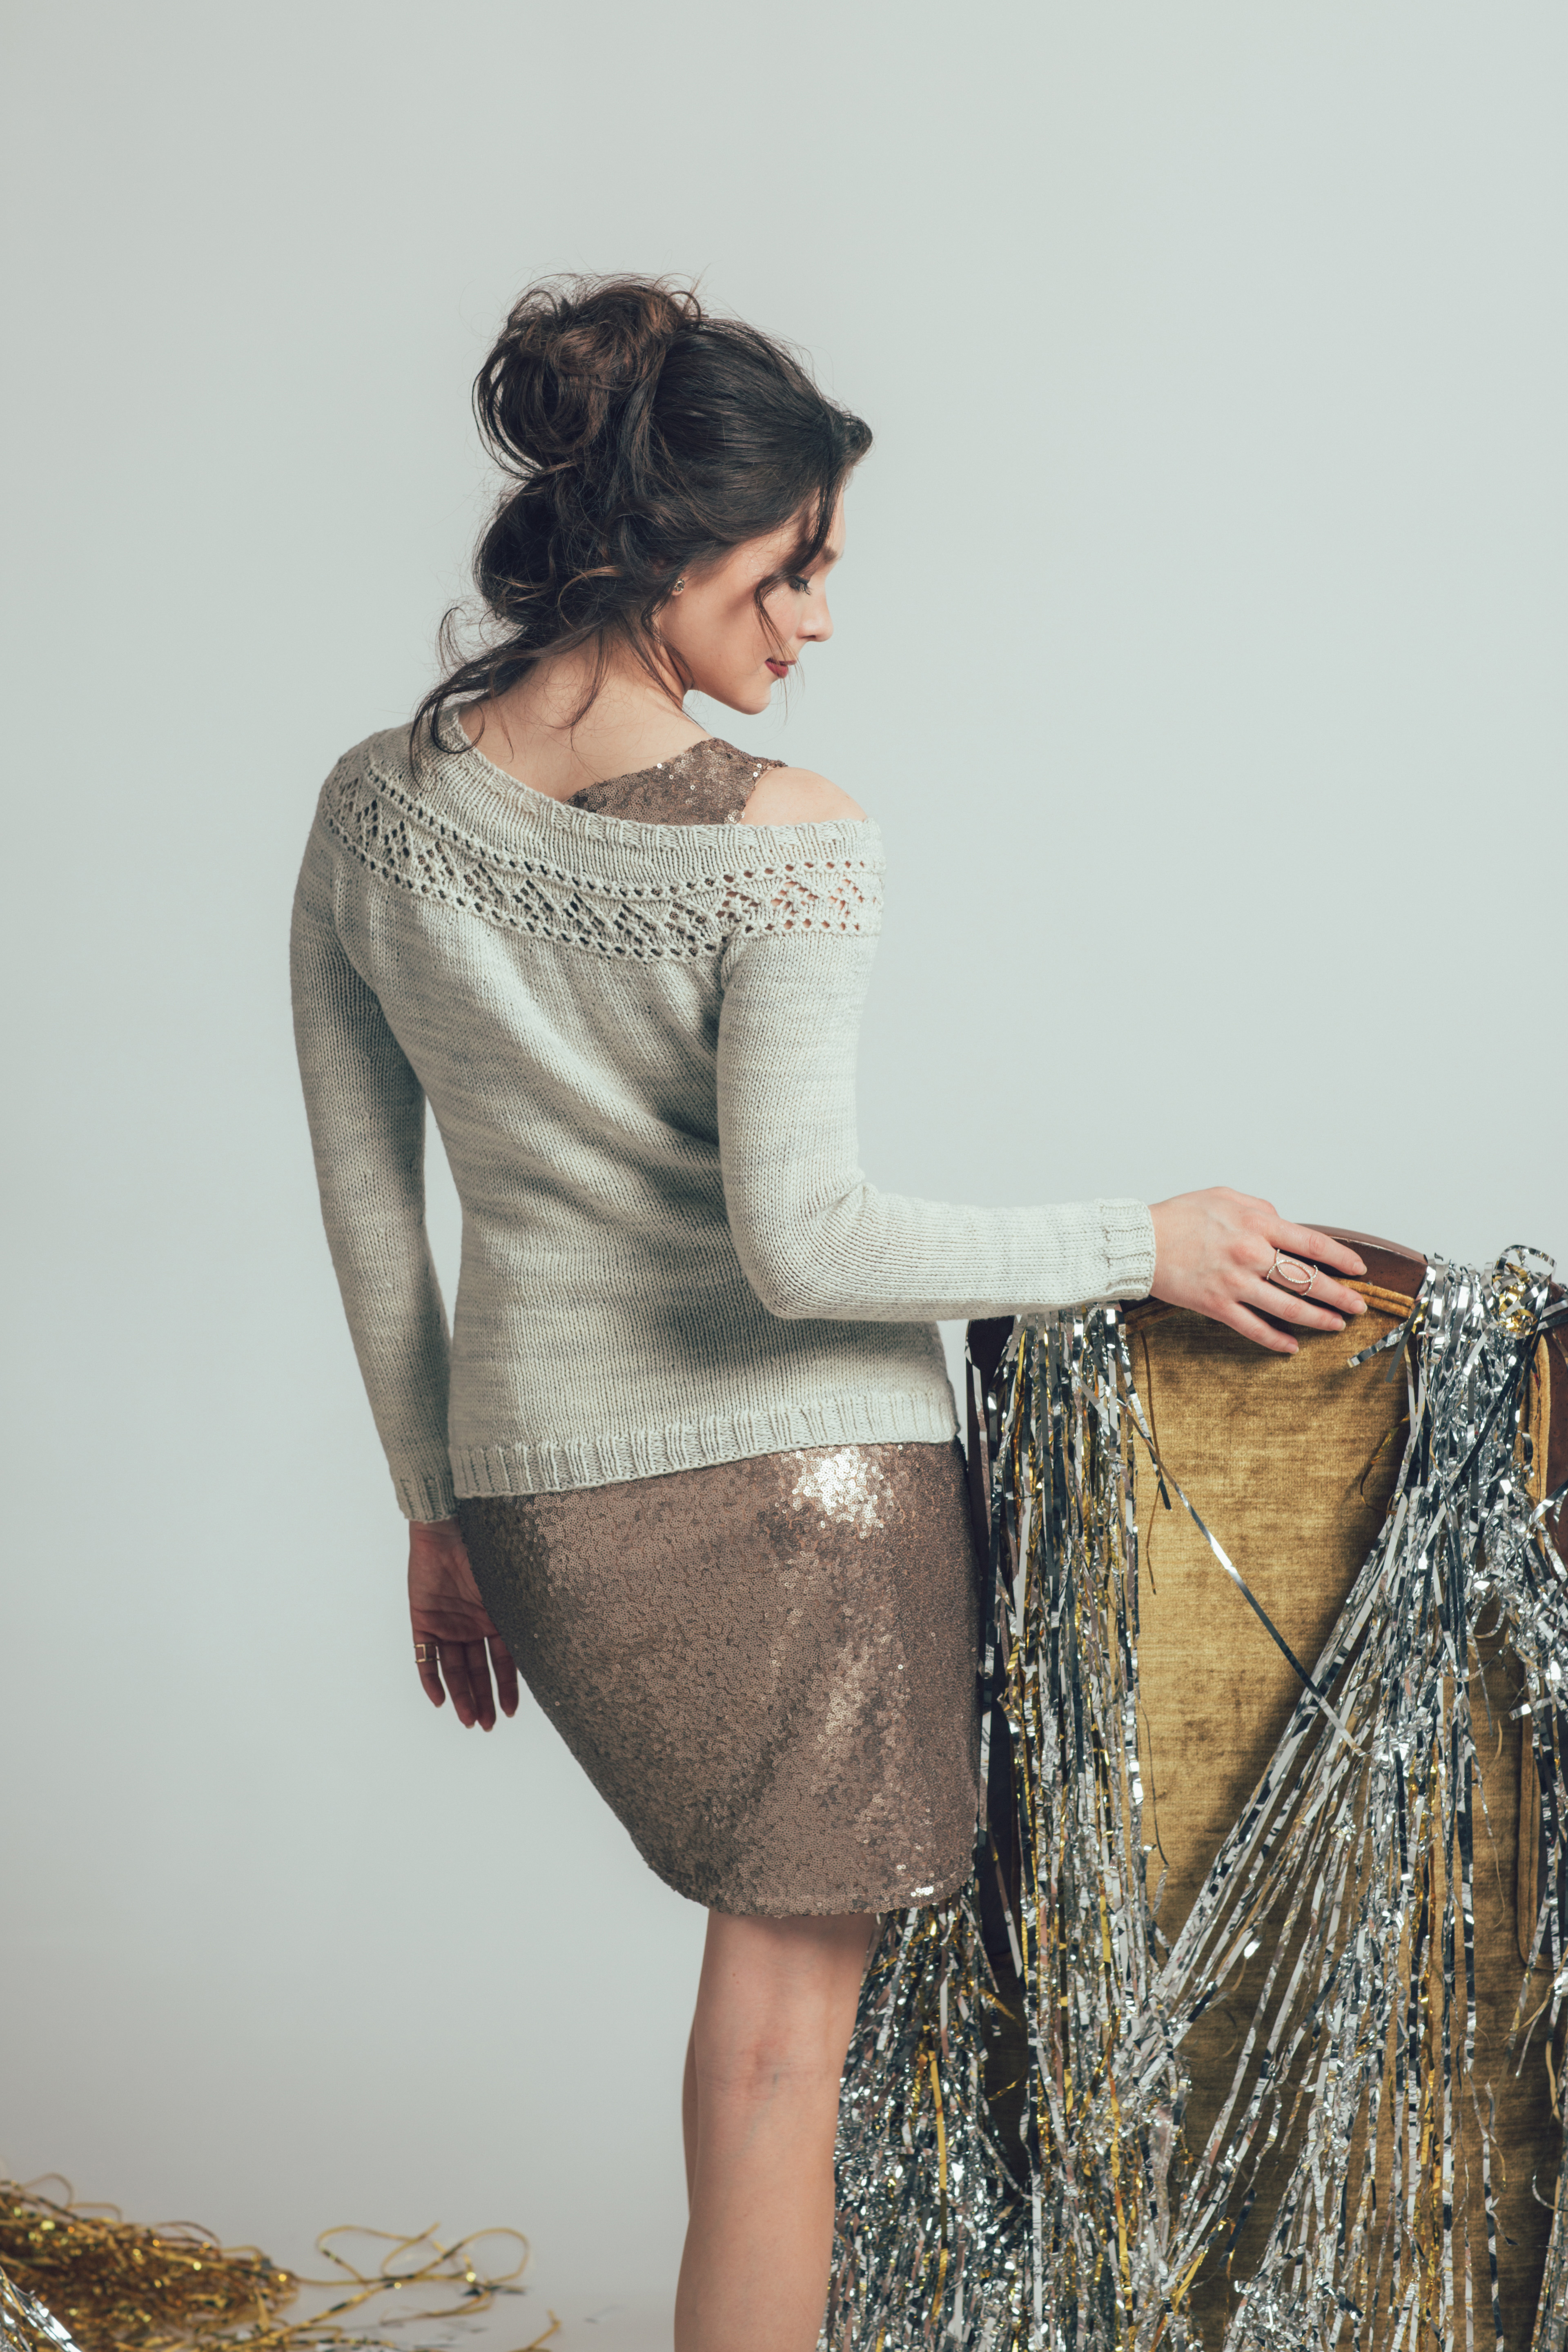 Banquet Sweater knitting pattern by Kiri FitzGerald-Hillier from knitscene Winter 2016